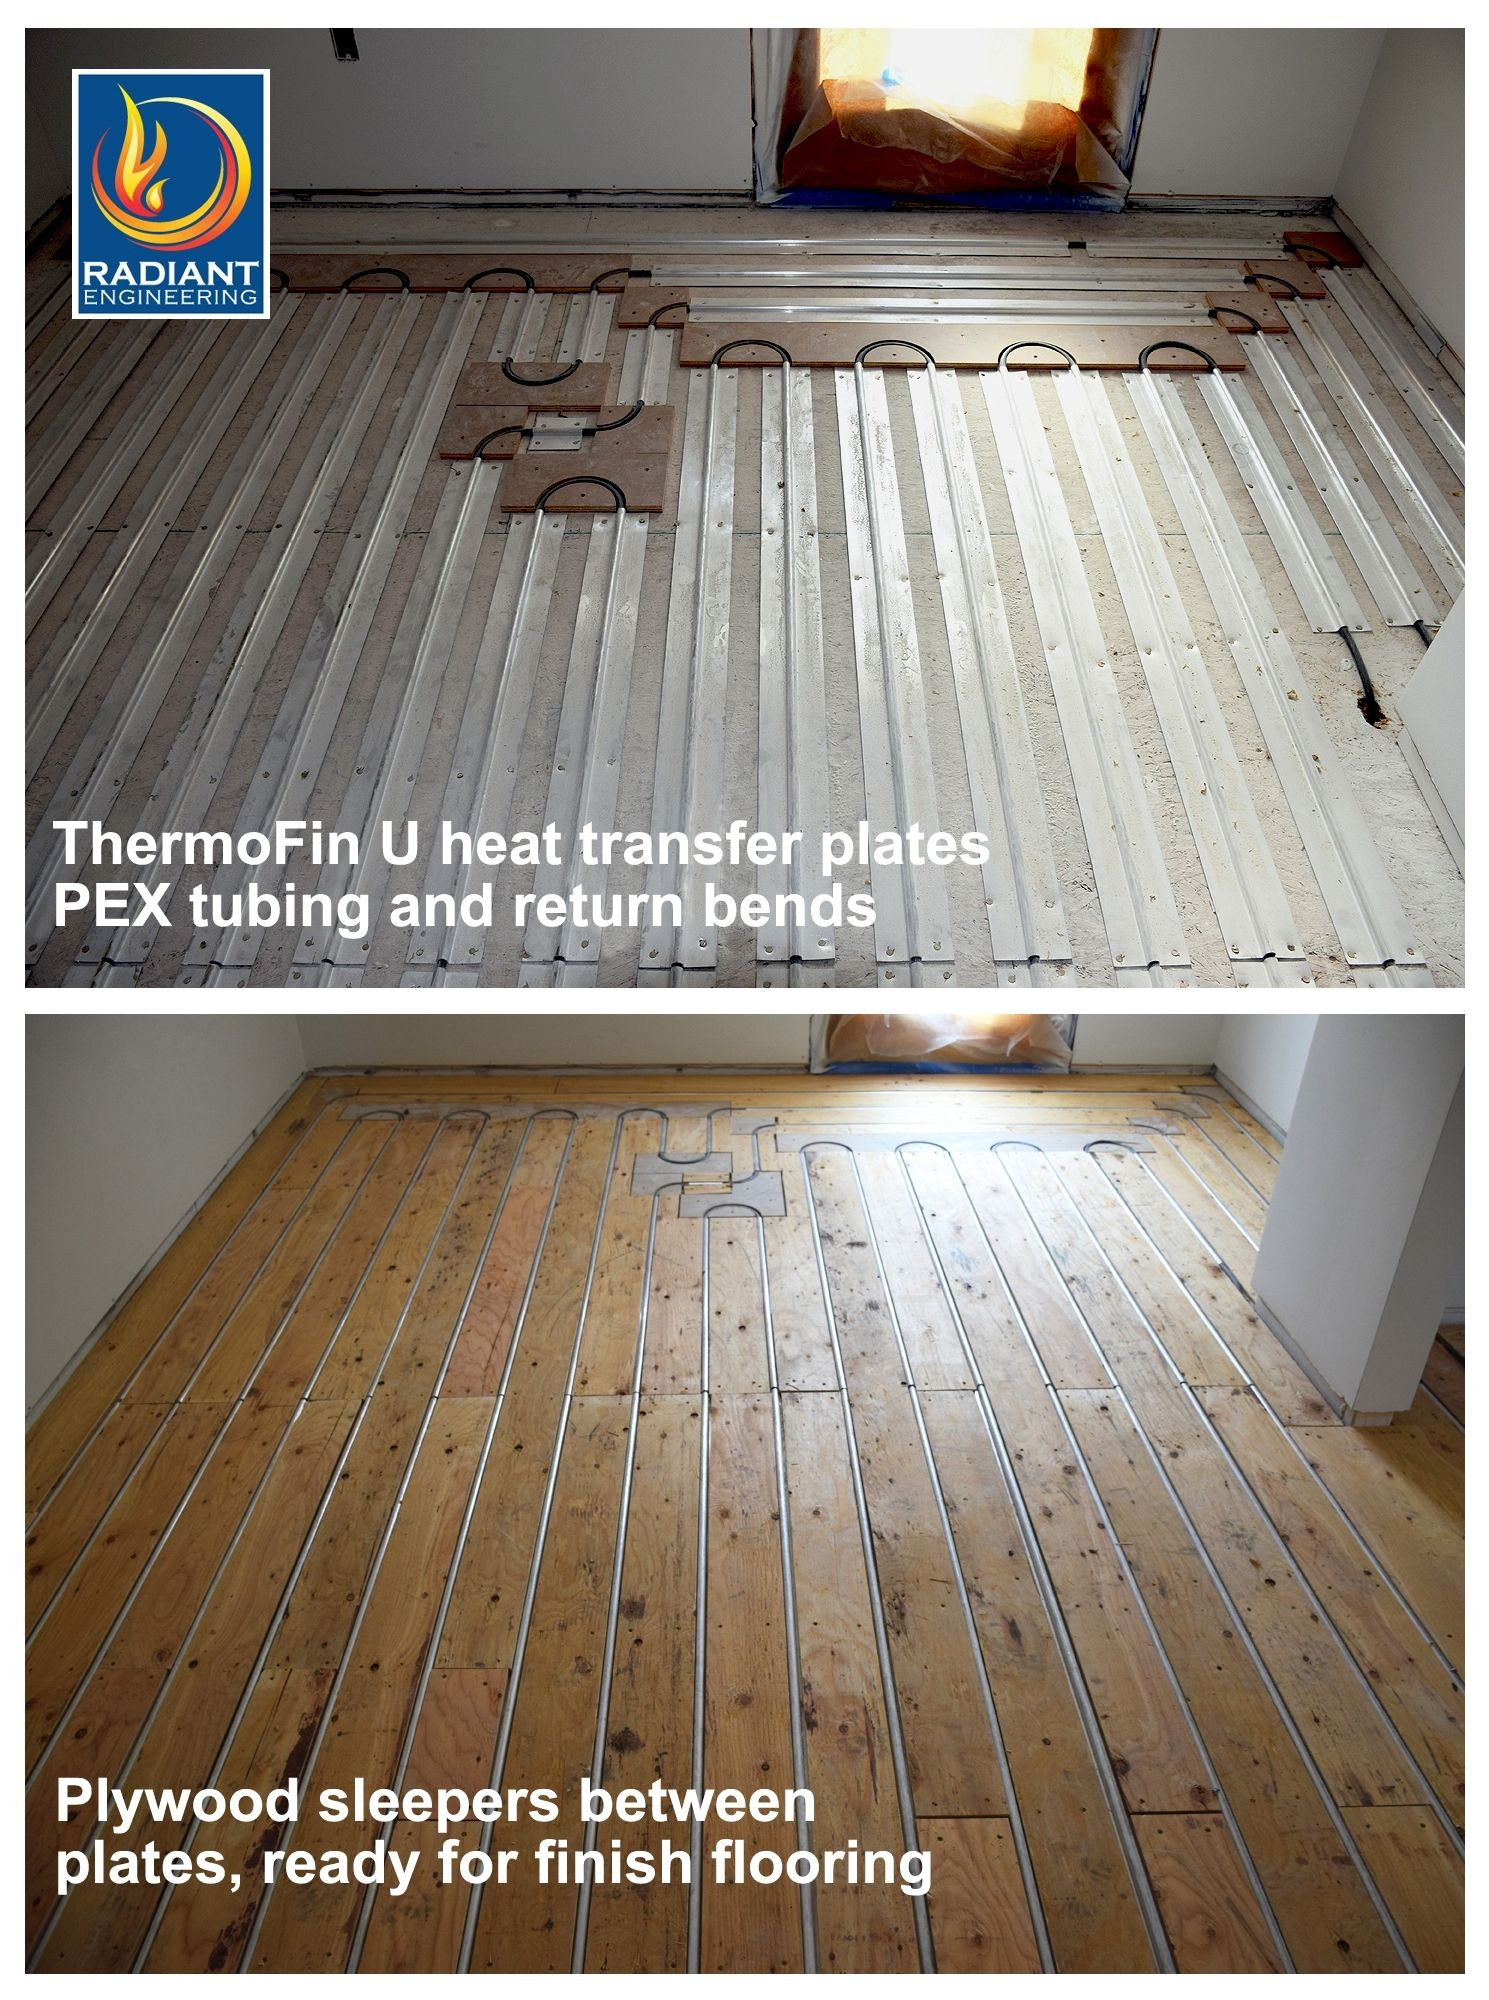 Wood Flooring Over Hydronic Radiant Heat Using The Renewed Look Which Is Given To Floor Heating